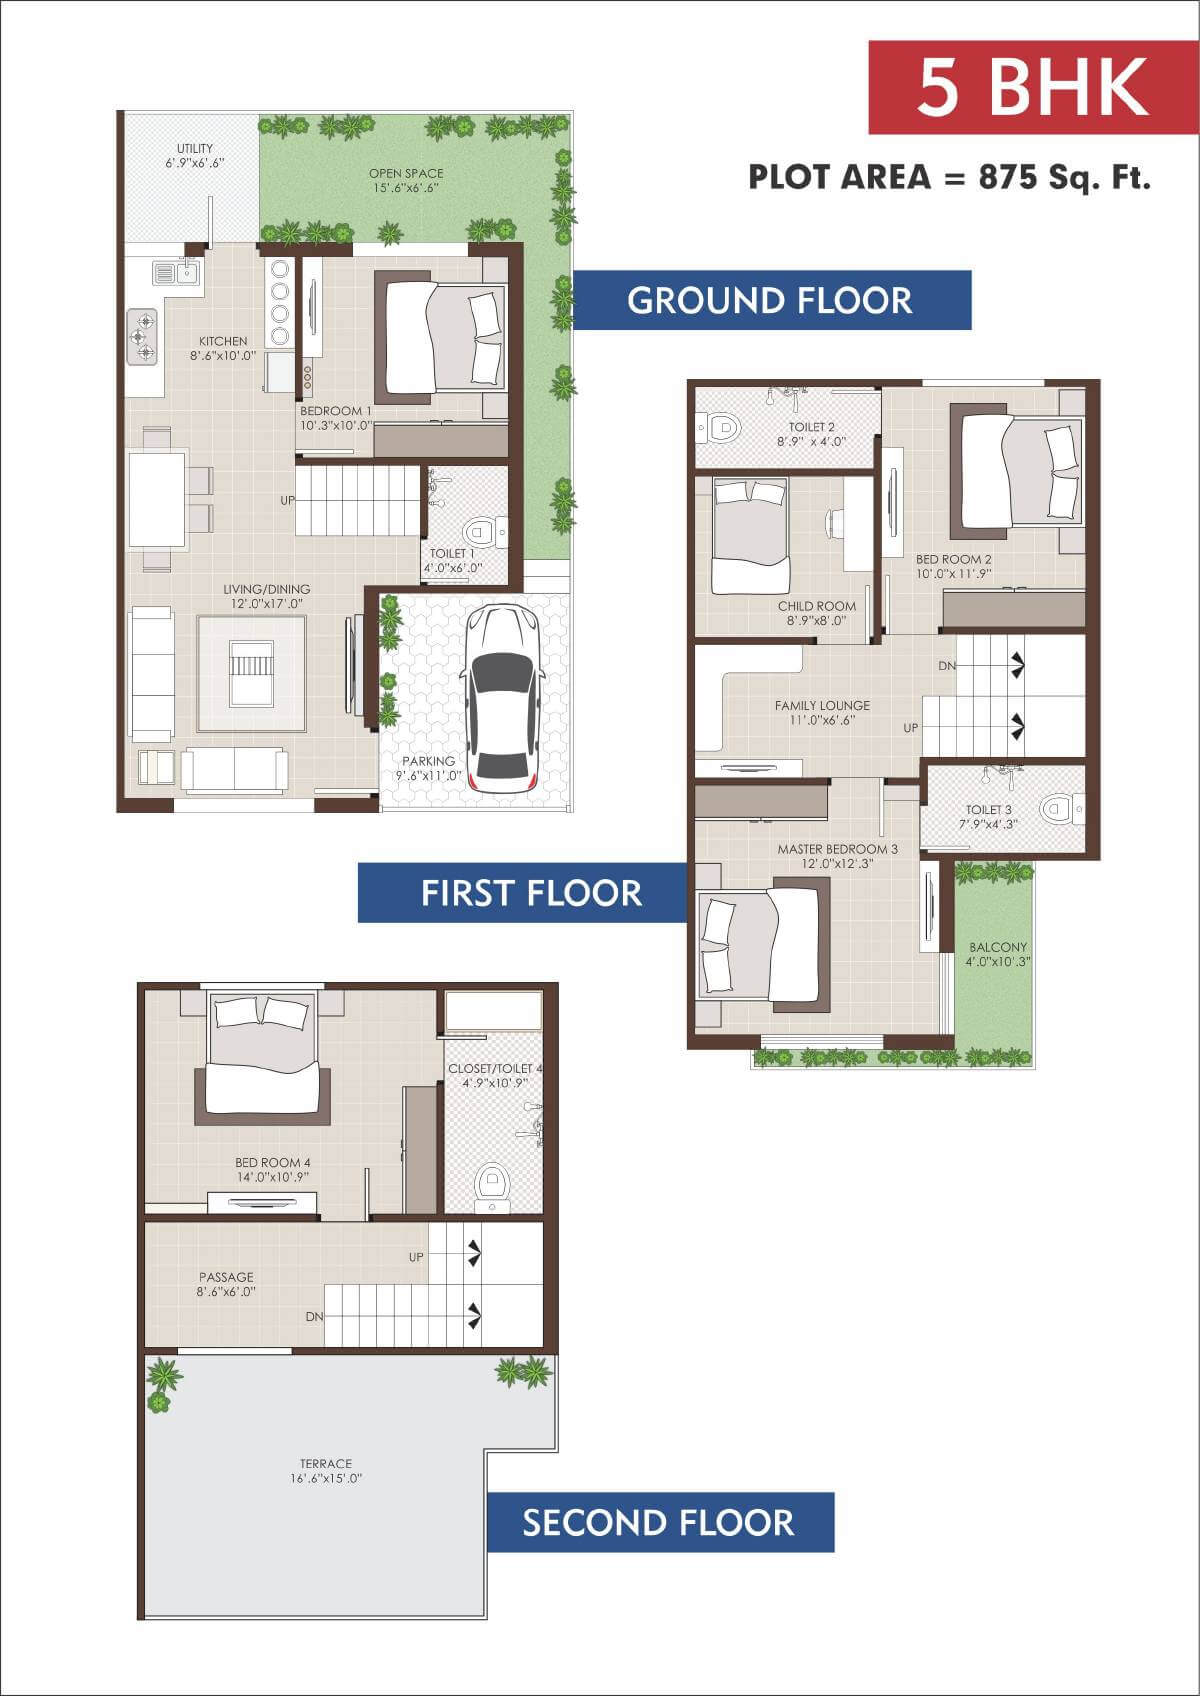 100 Family Compound Floor Plans 25 Woodgate Ct